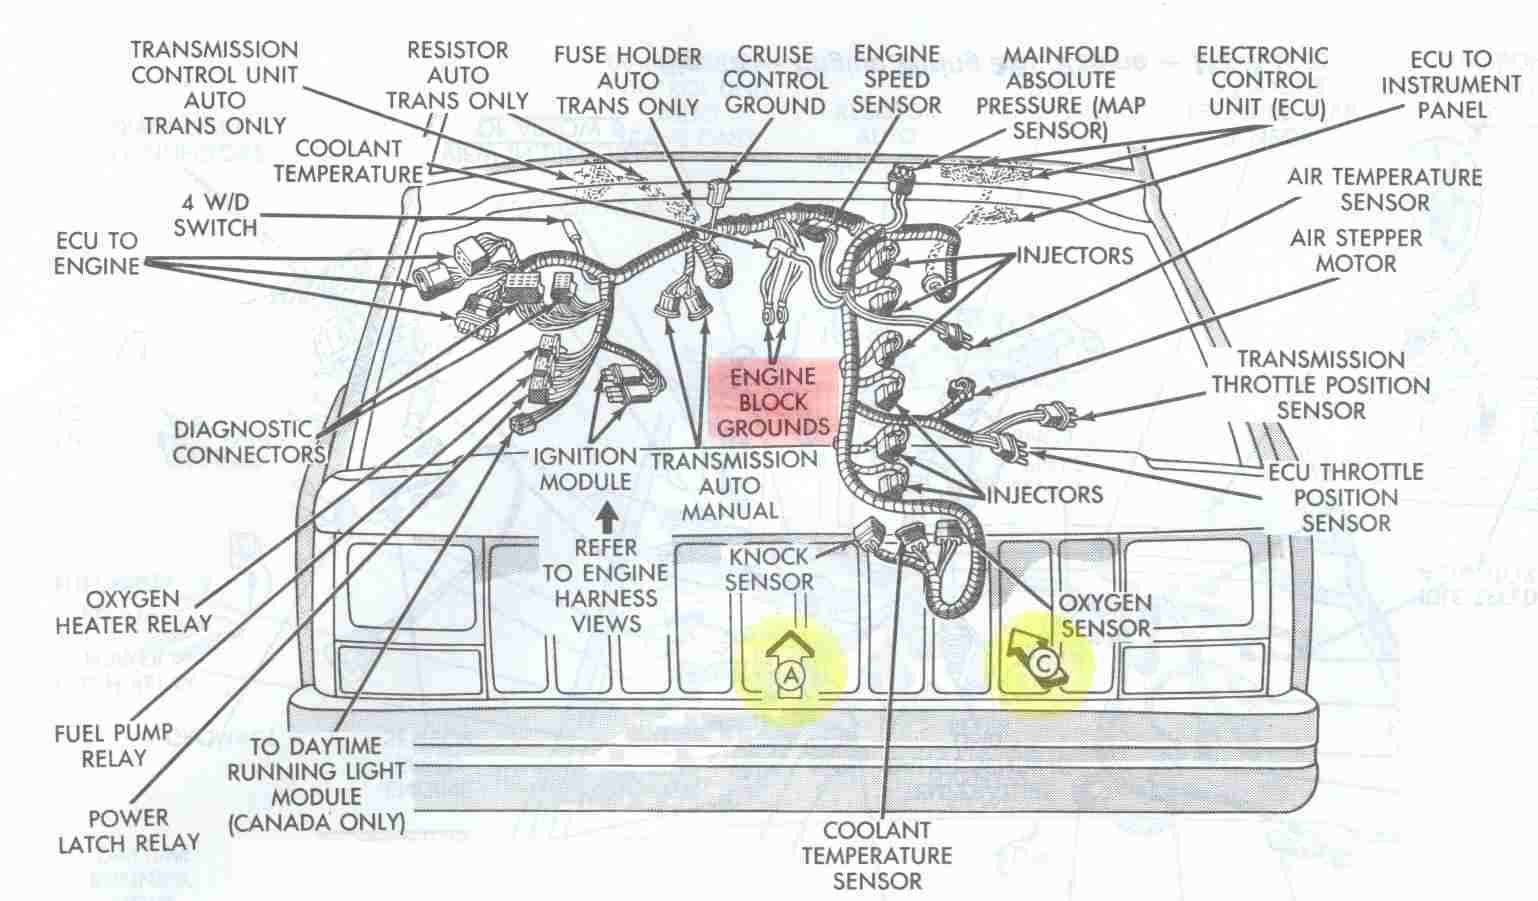 Engine Bay Schematic Showing Major Electrical Ground Points For 40l 1993 F150 4 9 Diagram Jeep Cherokee Engines